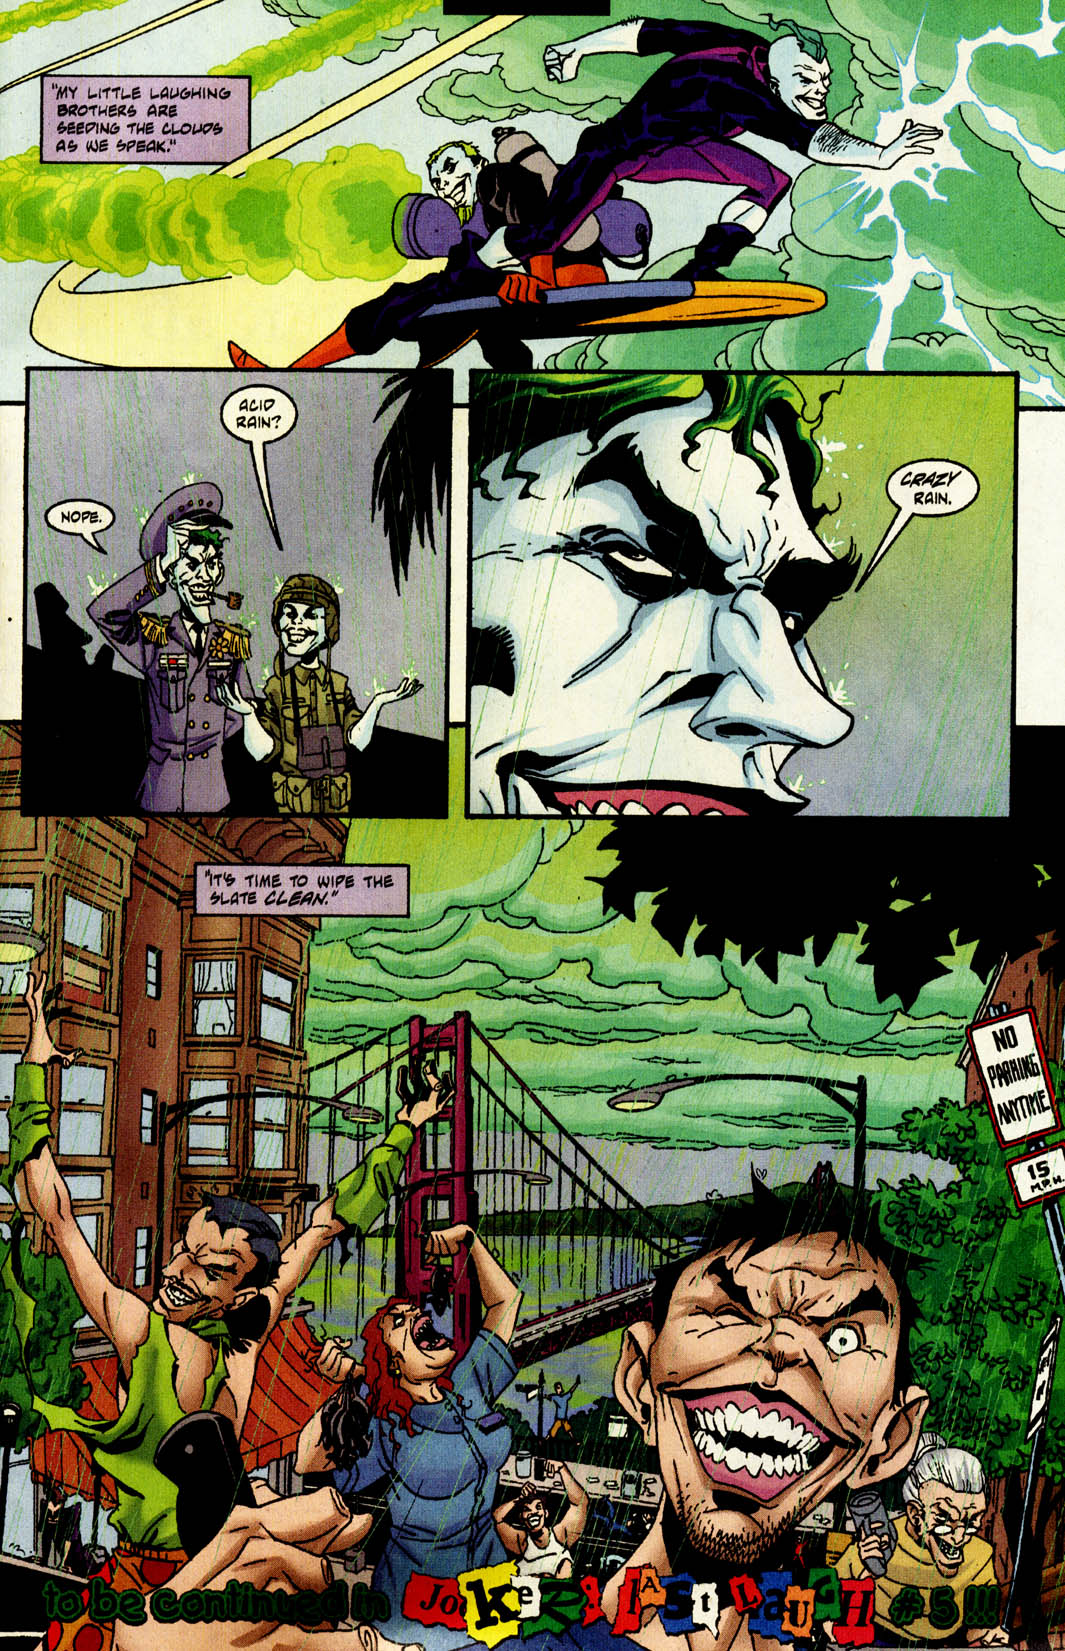 JokerLastLaughBk04of06-30CrazyRain.jpg